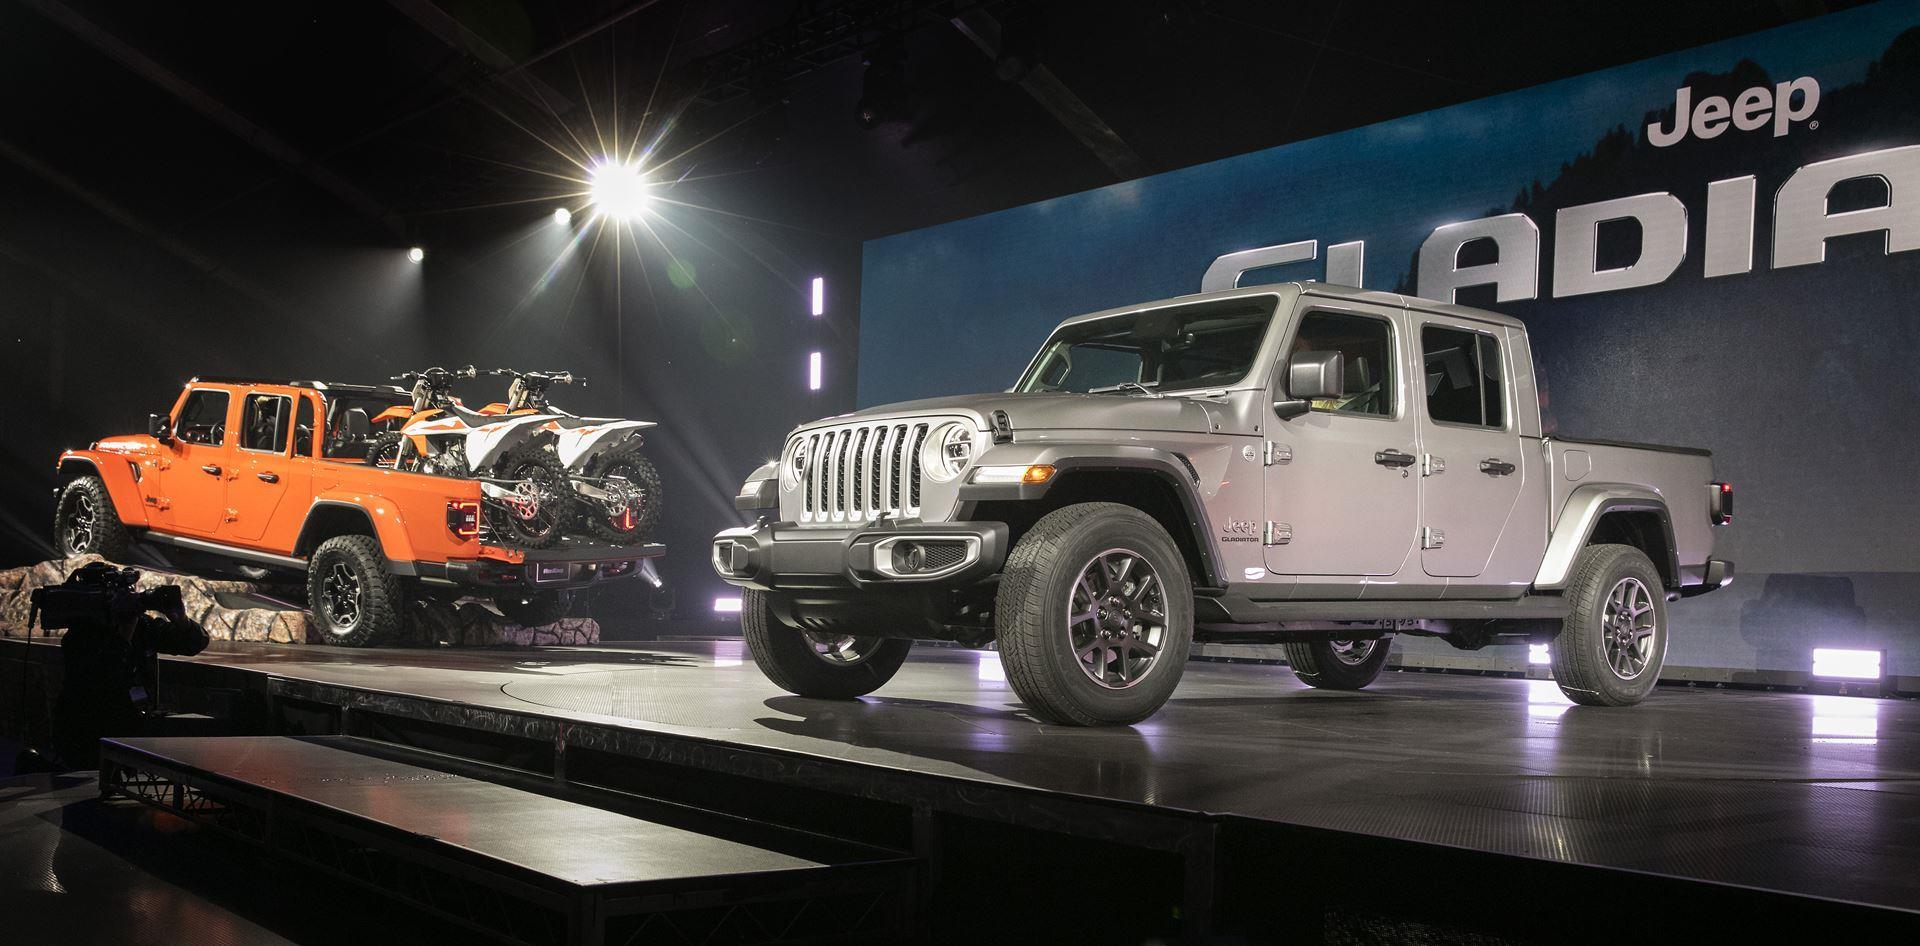 2019 Jeep Gladiator News And Information Willys Fc 170 Truck Beds